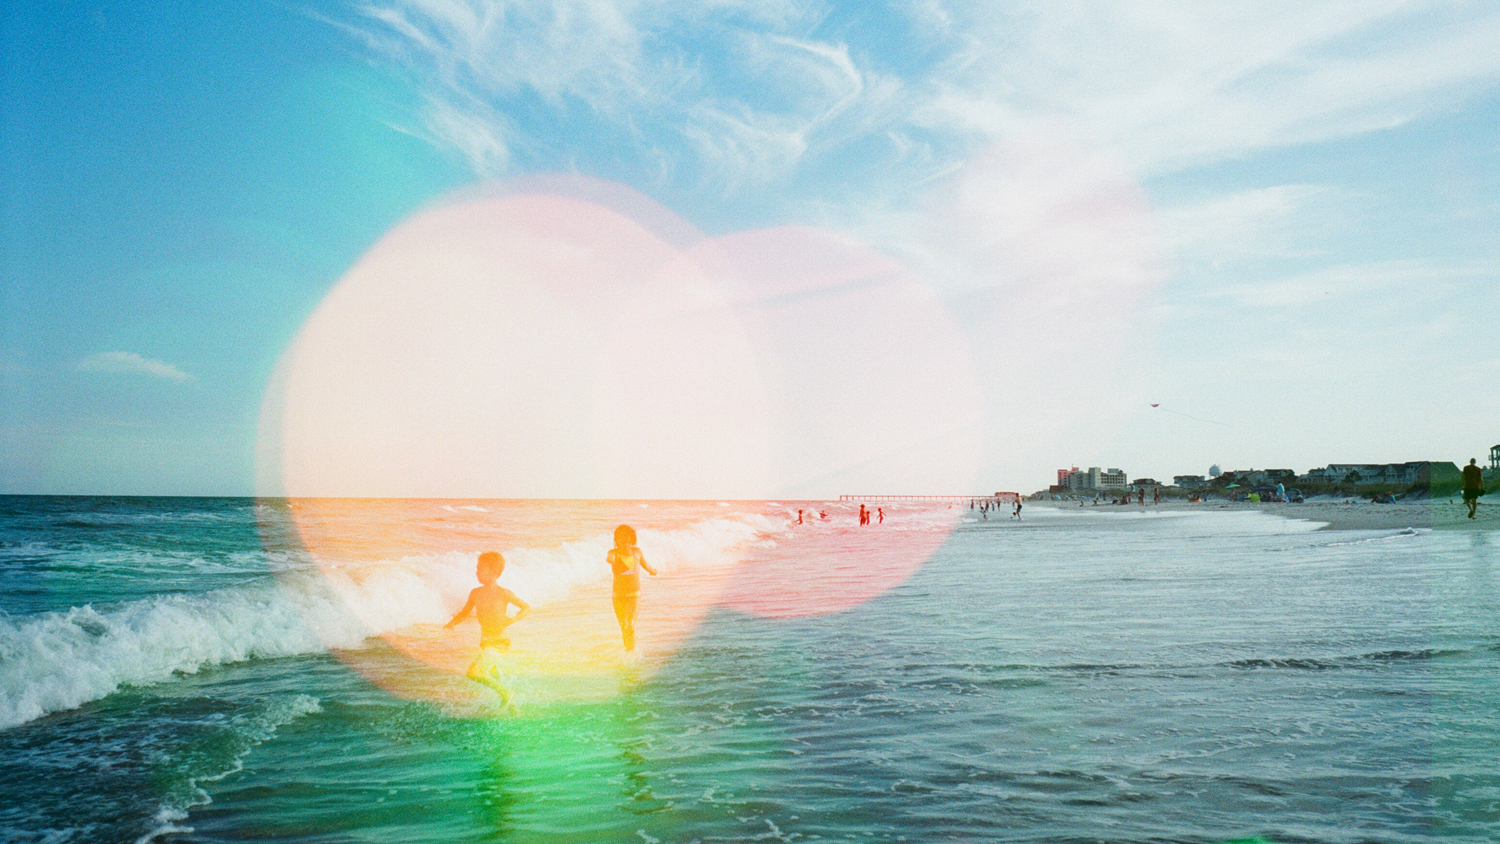 raleigh-film-photographer-beach-colorful-photography-sessions